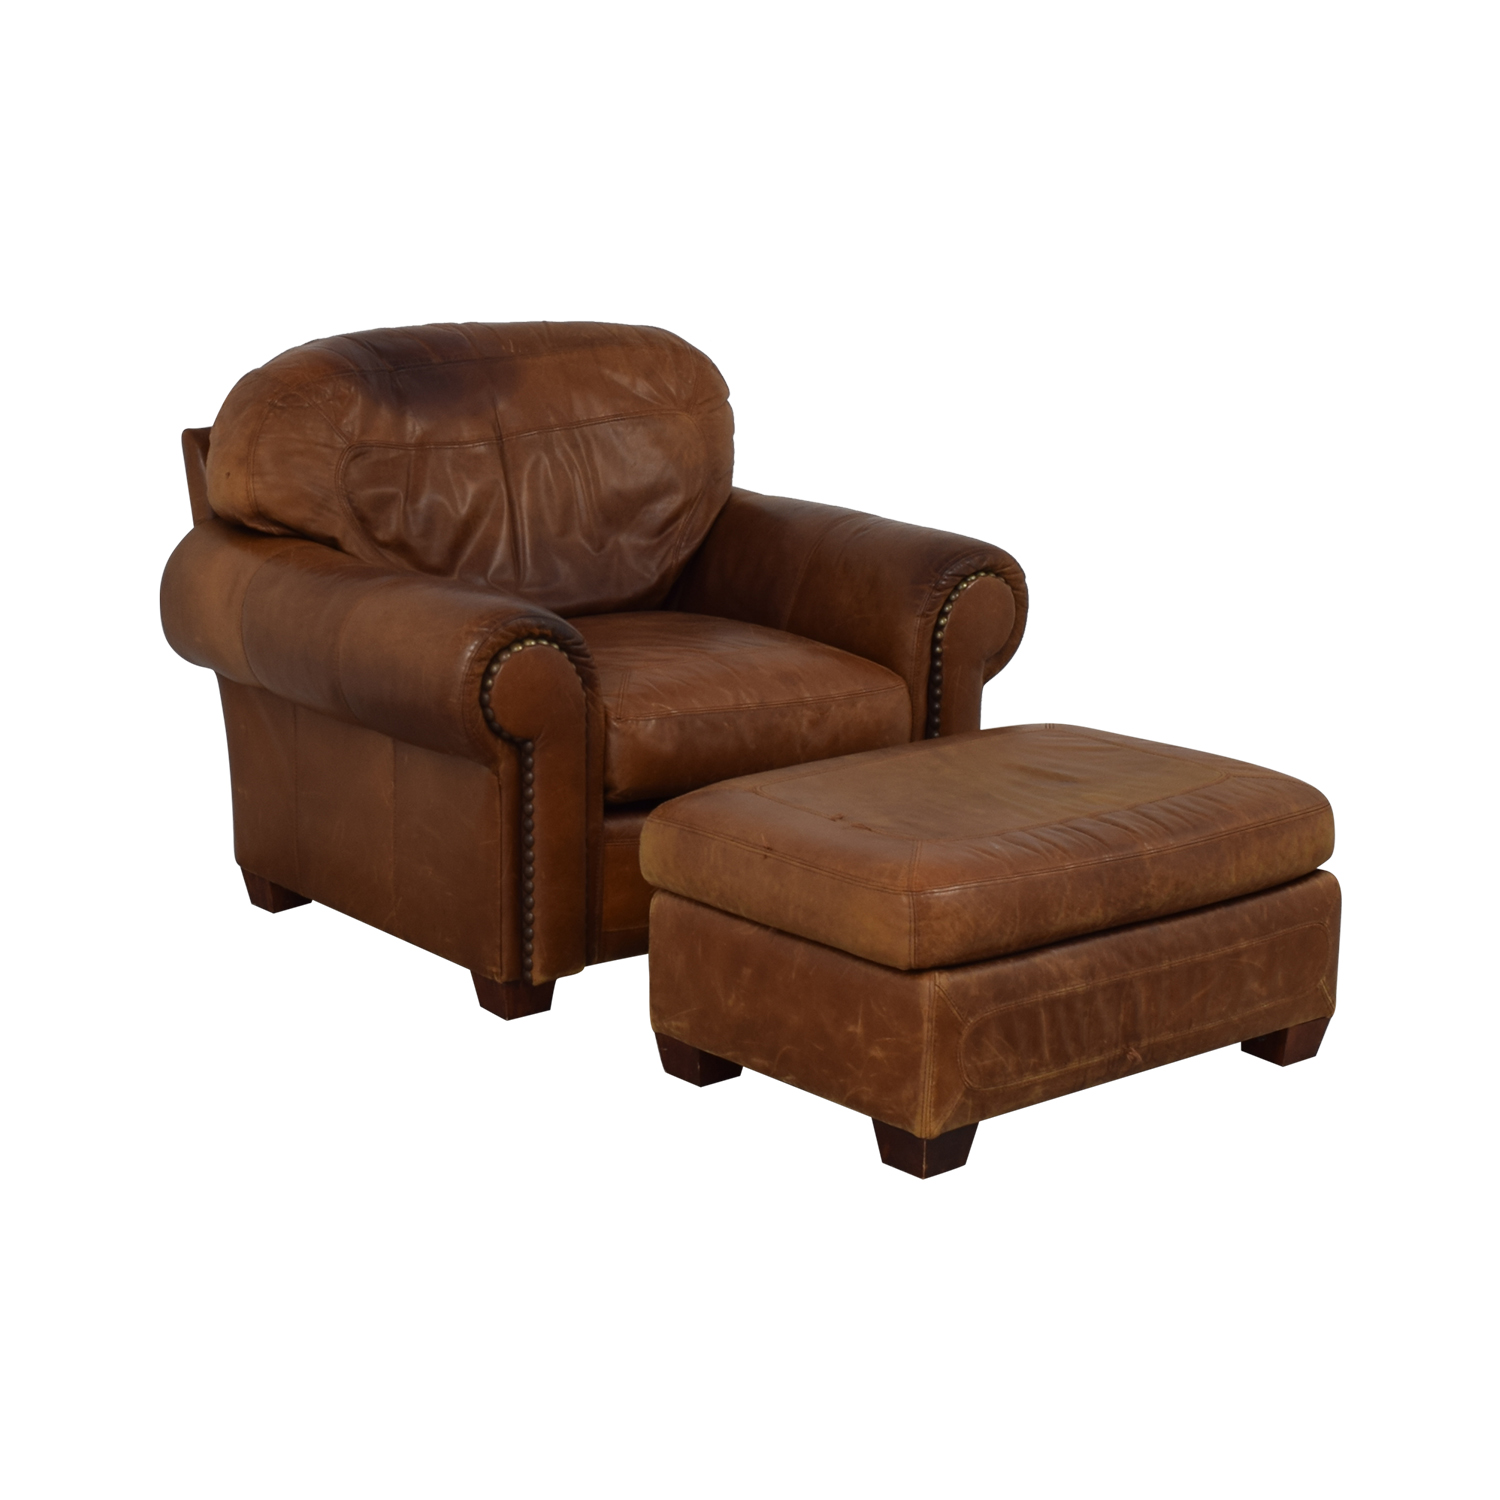 shop Stickley Cibola Brown Leather Armchair and Ottoman Stickley Furniture Chairs